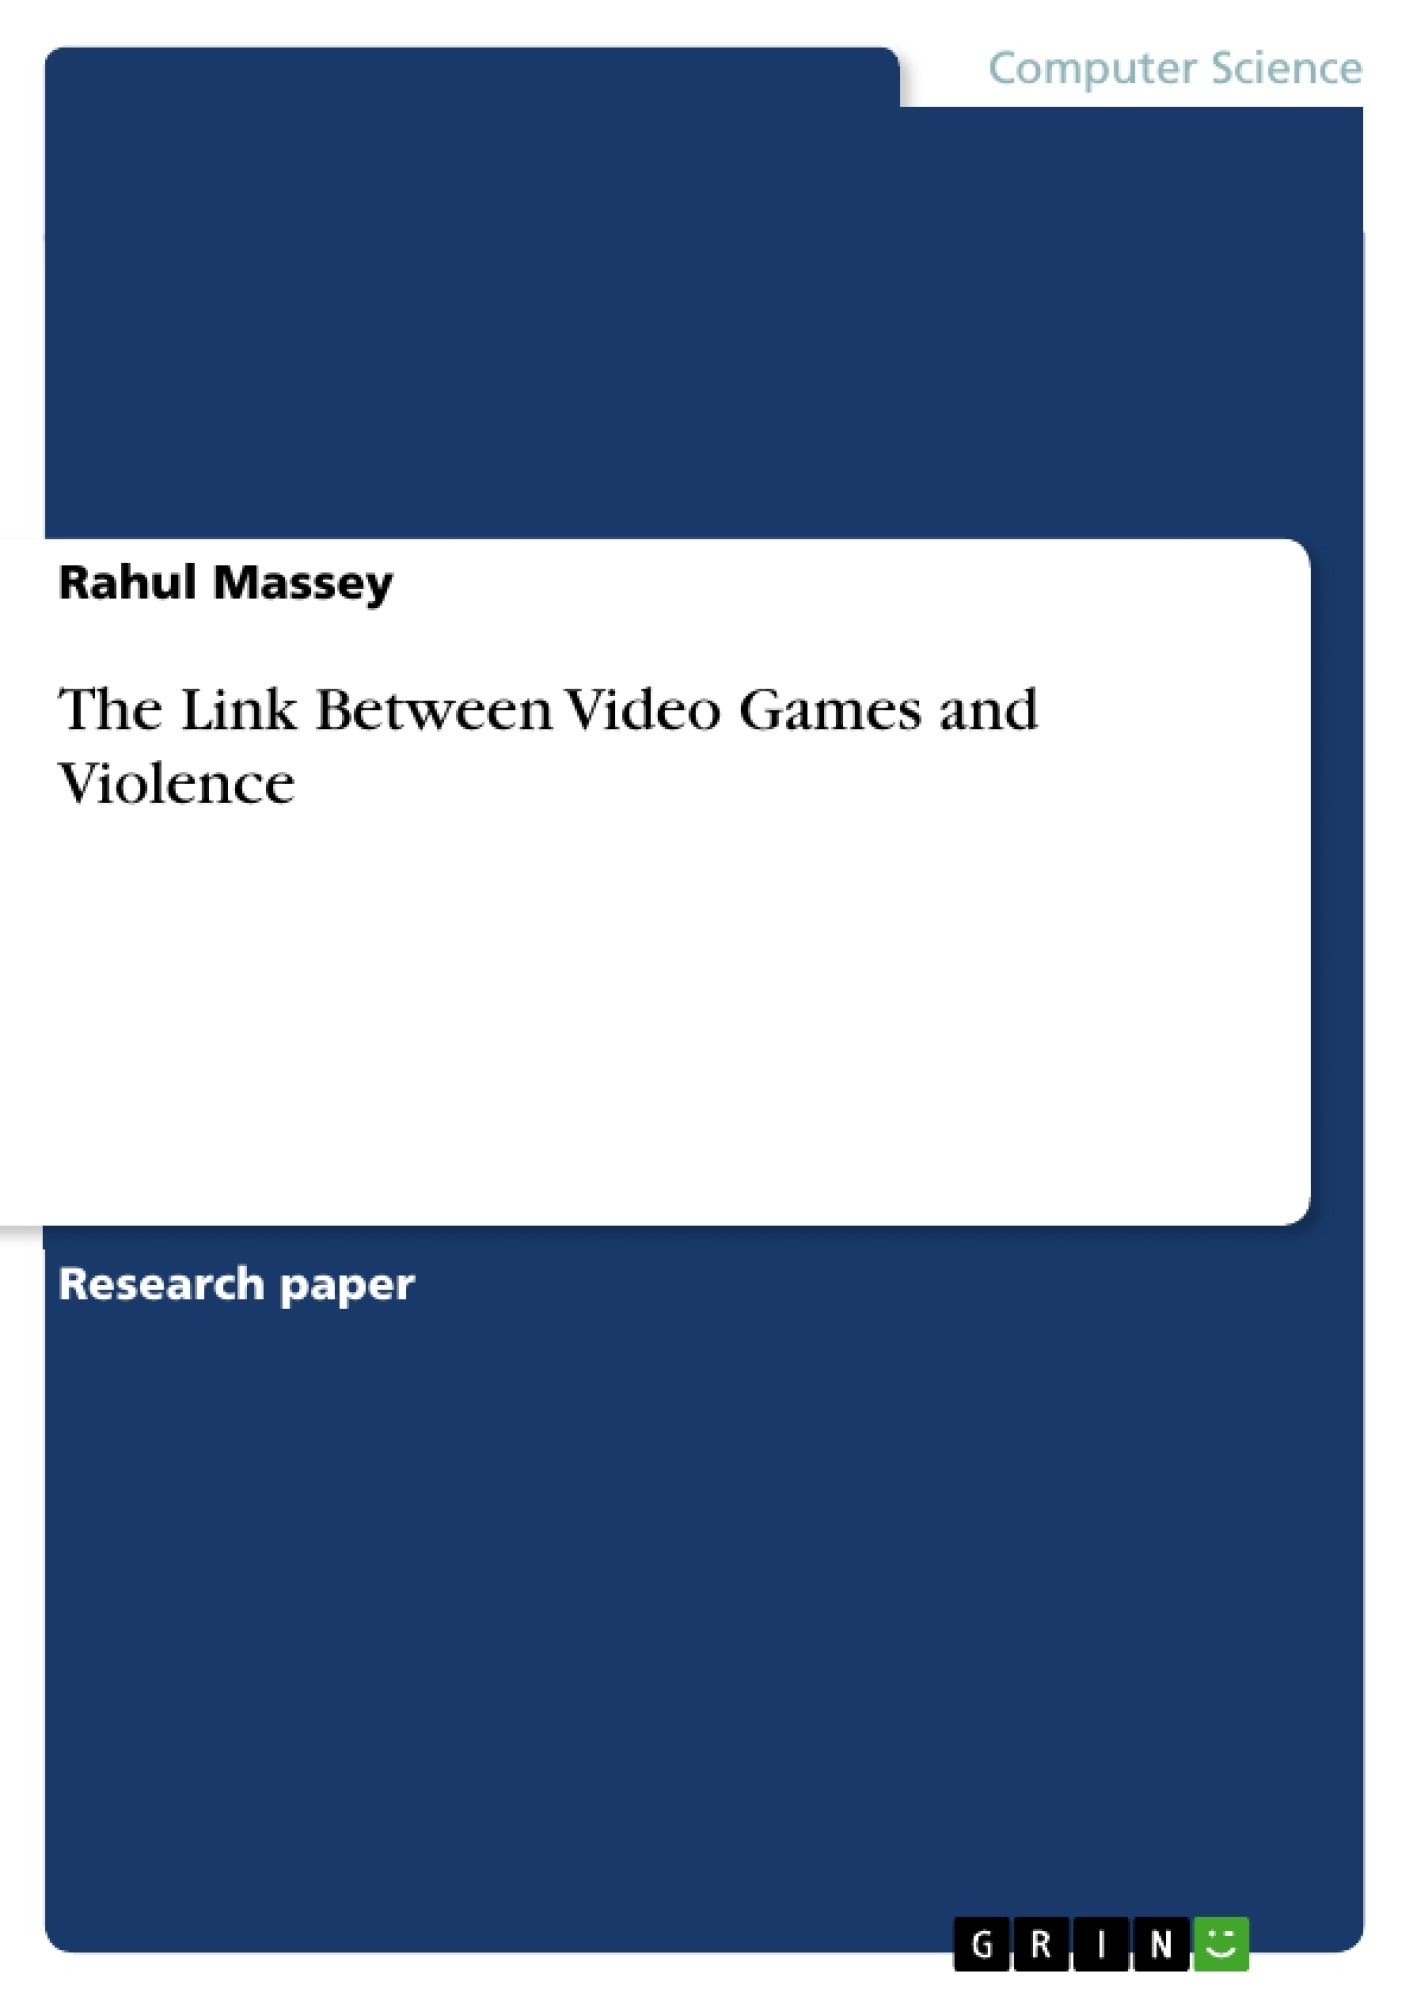 Title: The Link Between Video Games and Violence